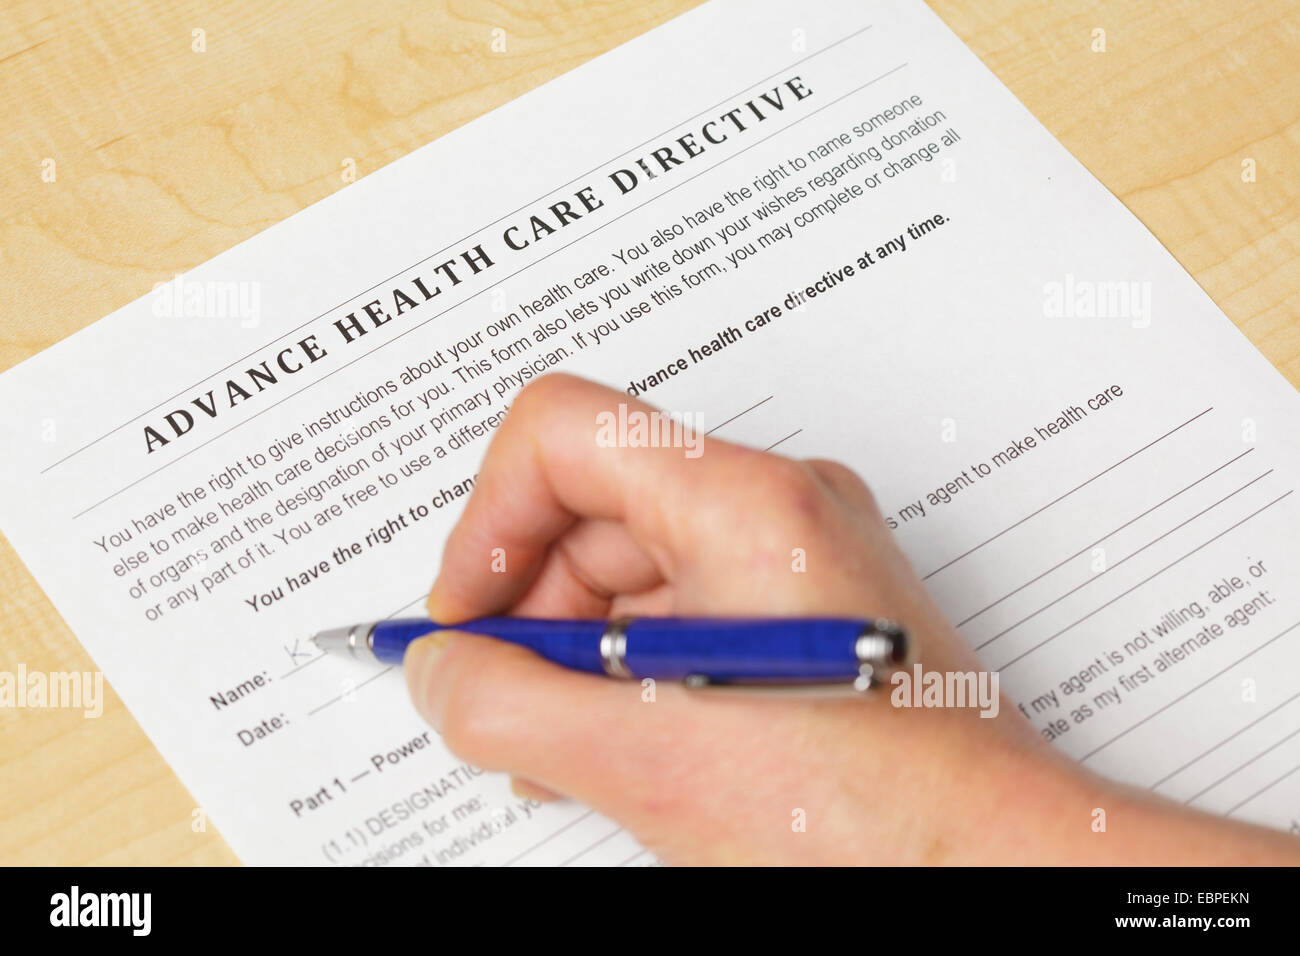 Signing an Advance Health Care Directive - Stock Image